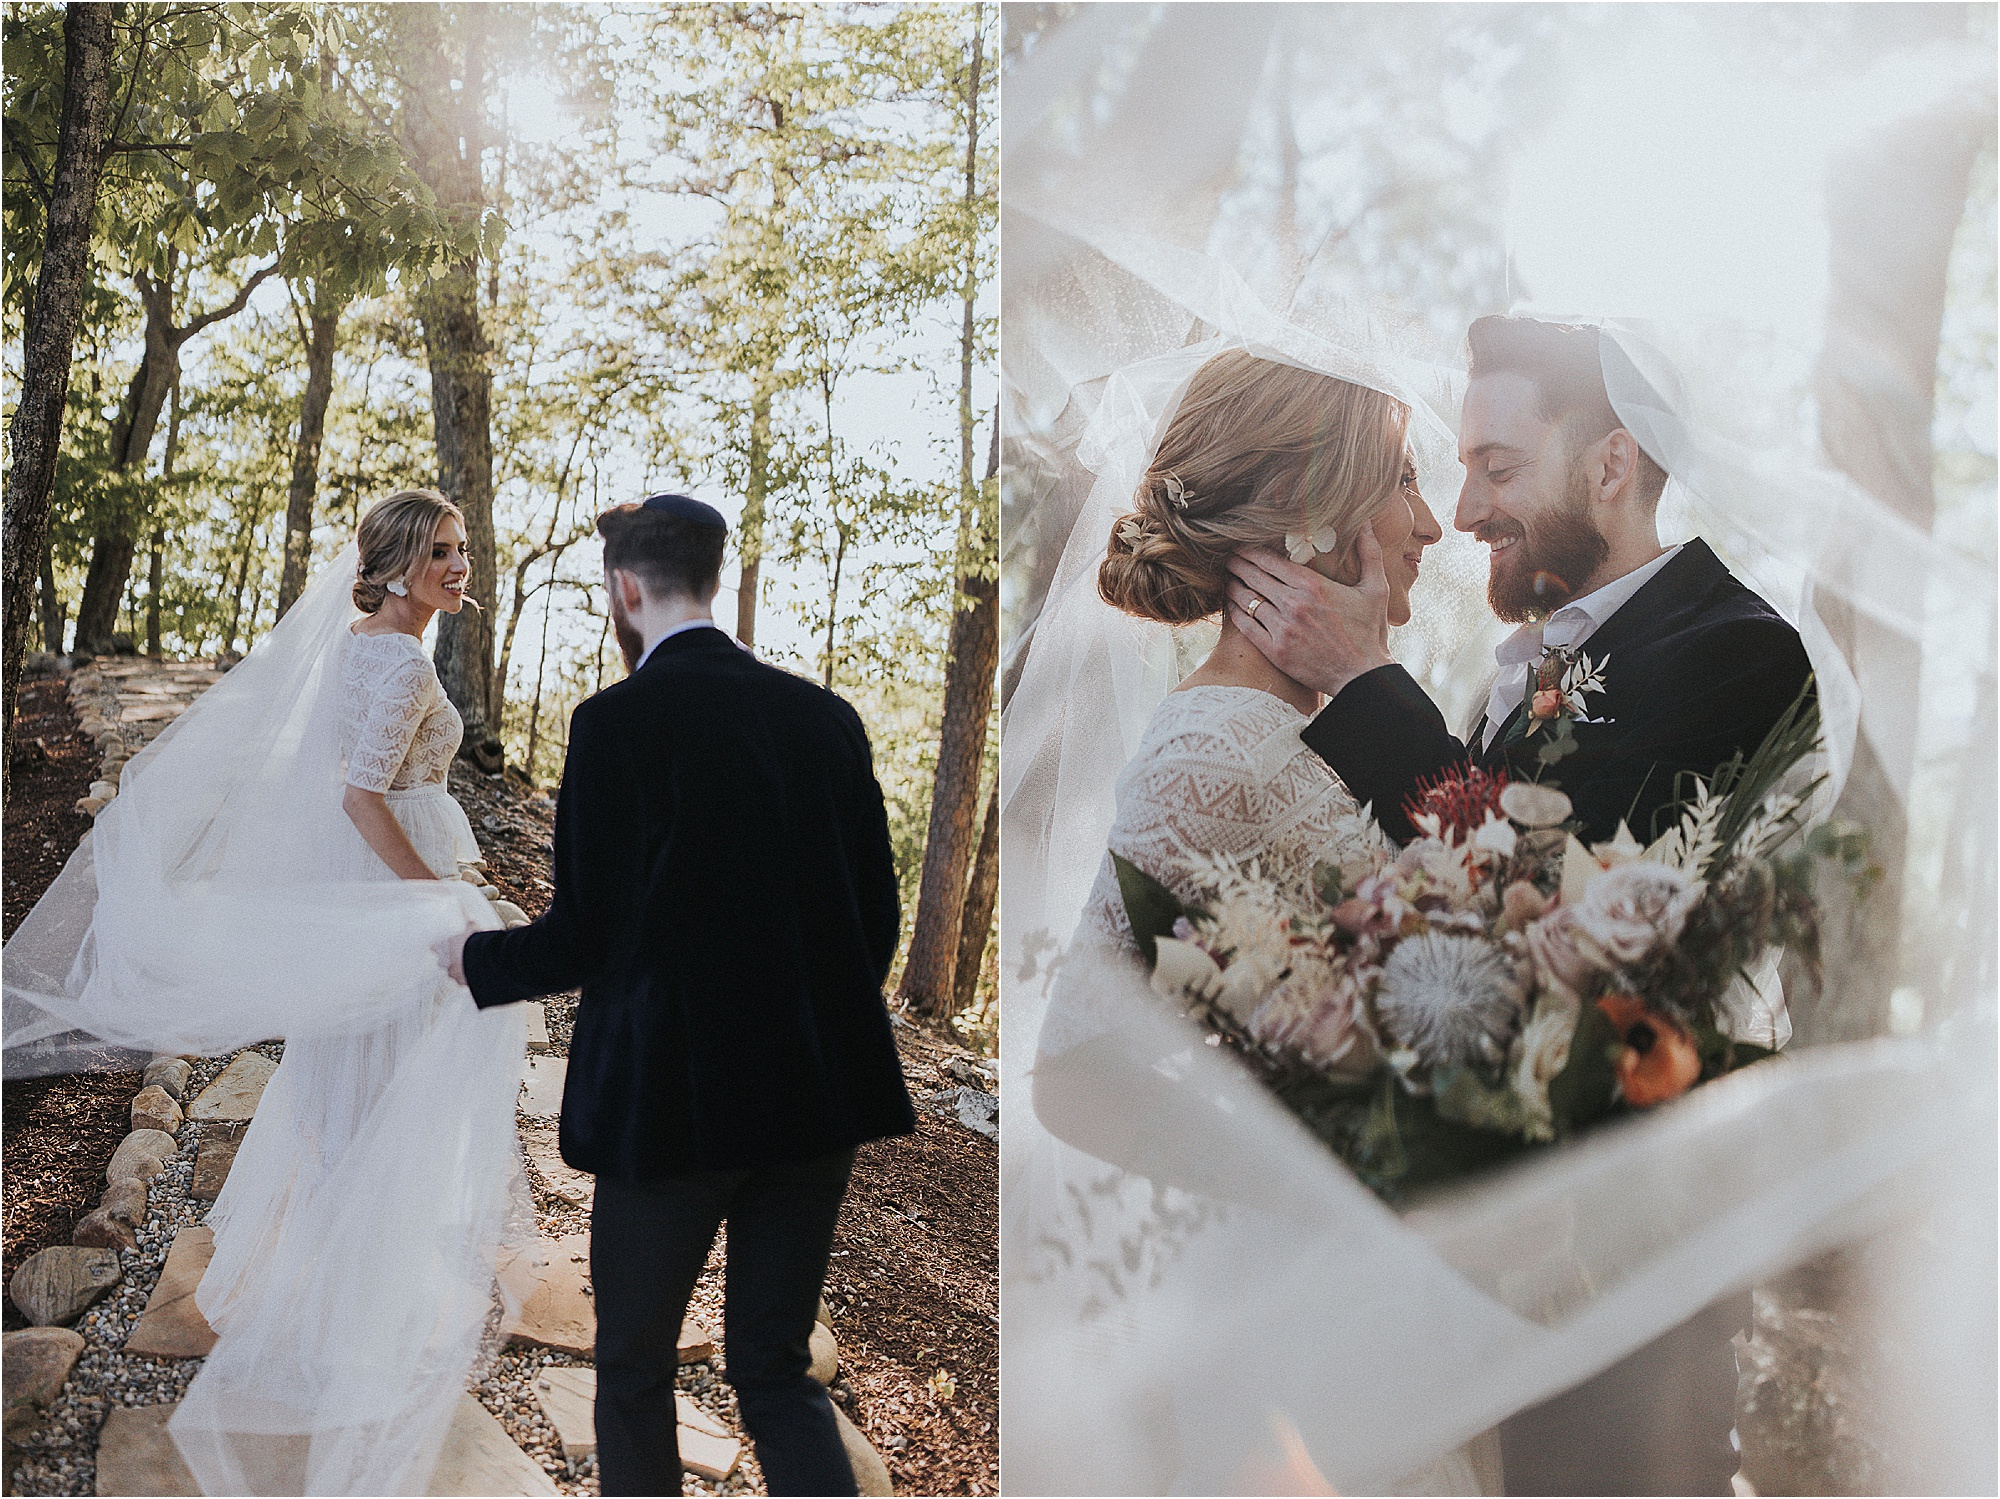 bride and groom walk in forest surrounded by wedding veil